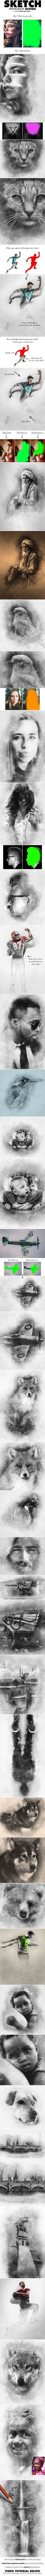 Sketch Photoshop Action (With 3D Pop Out Effect). Download here: https://graphicriver.net/item/sketch-photoshop-action-with-3d-pop-out-effect/17361333?ref=ksioks